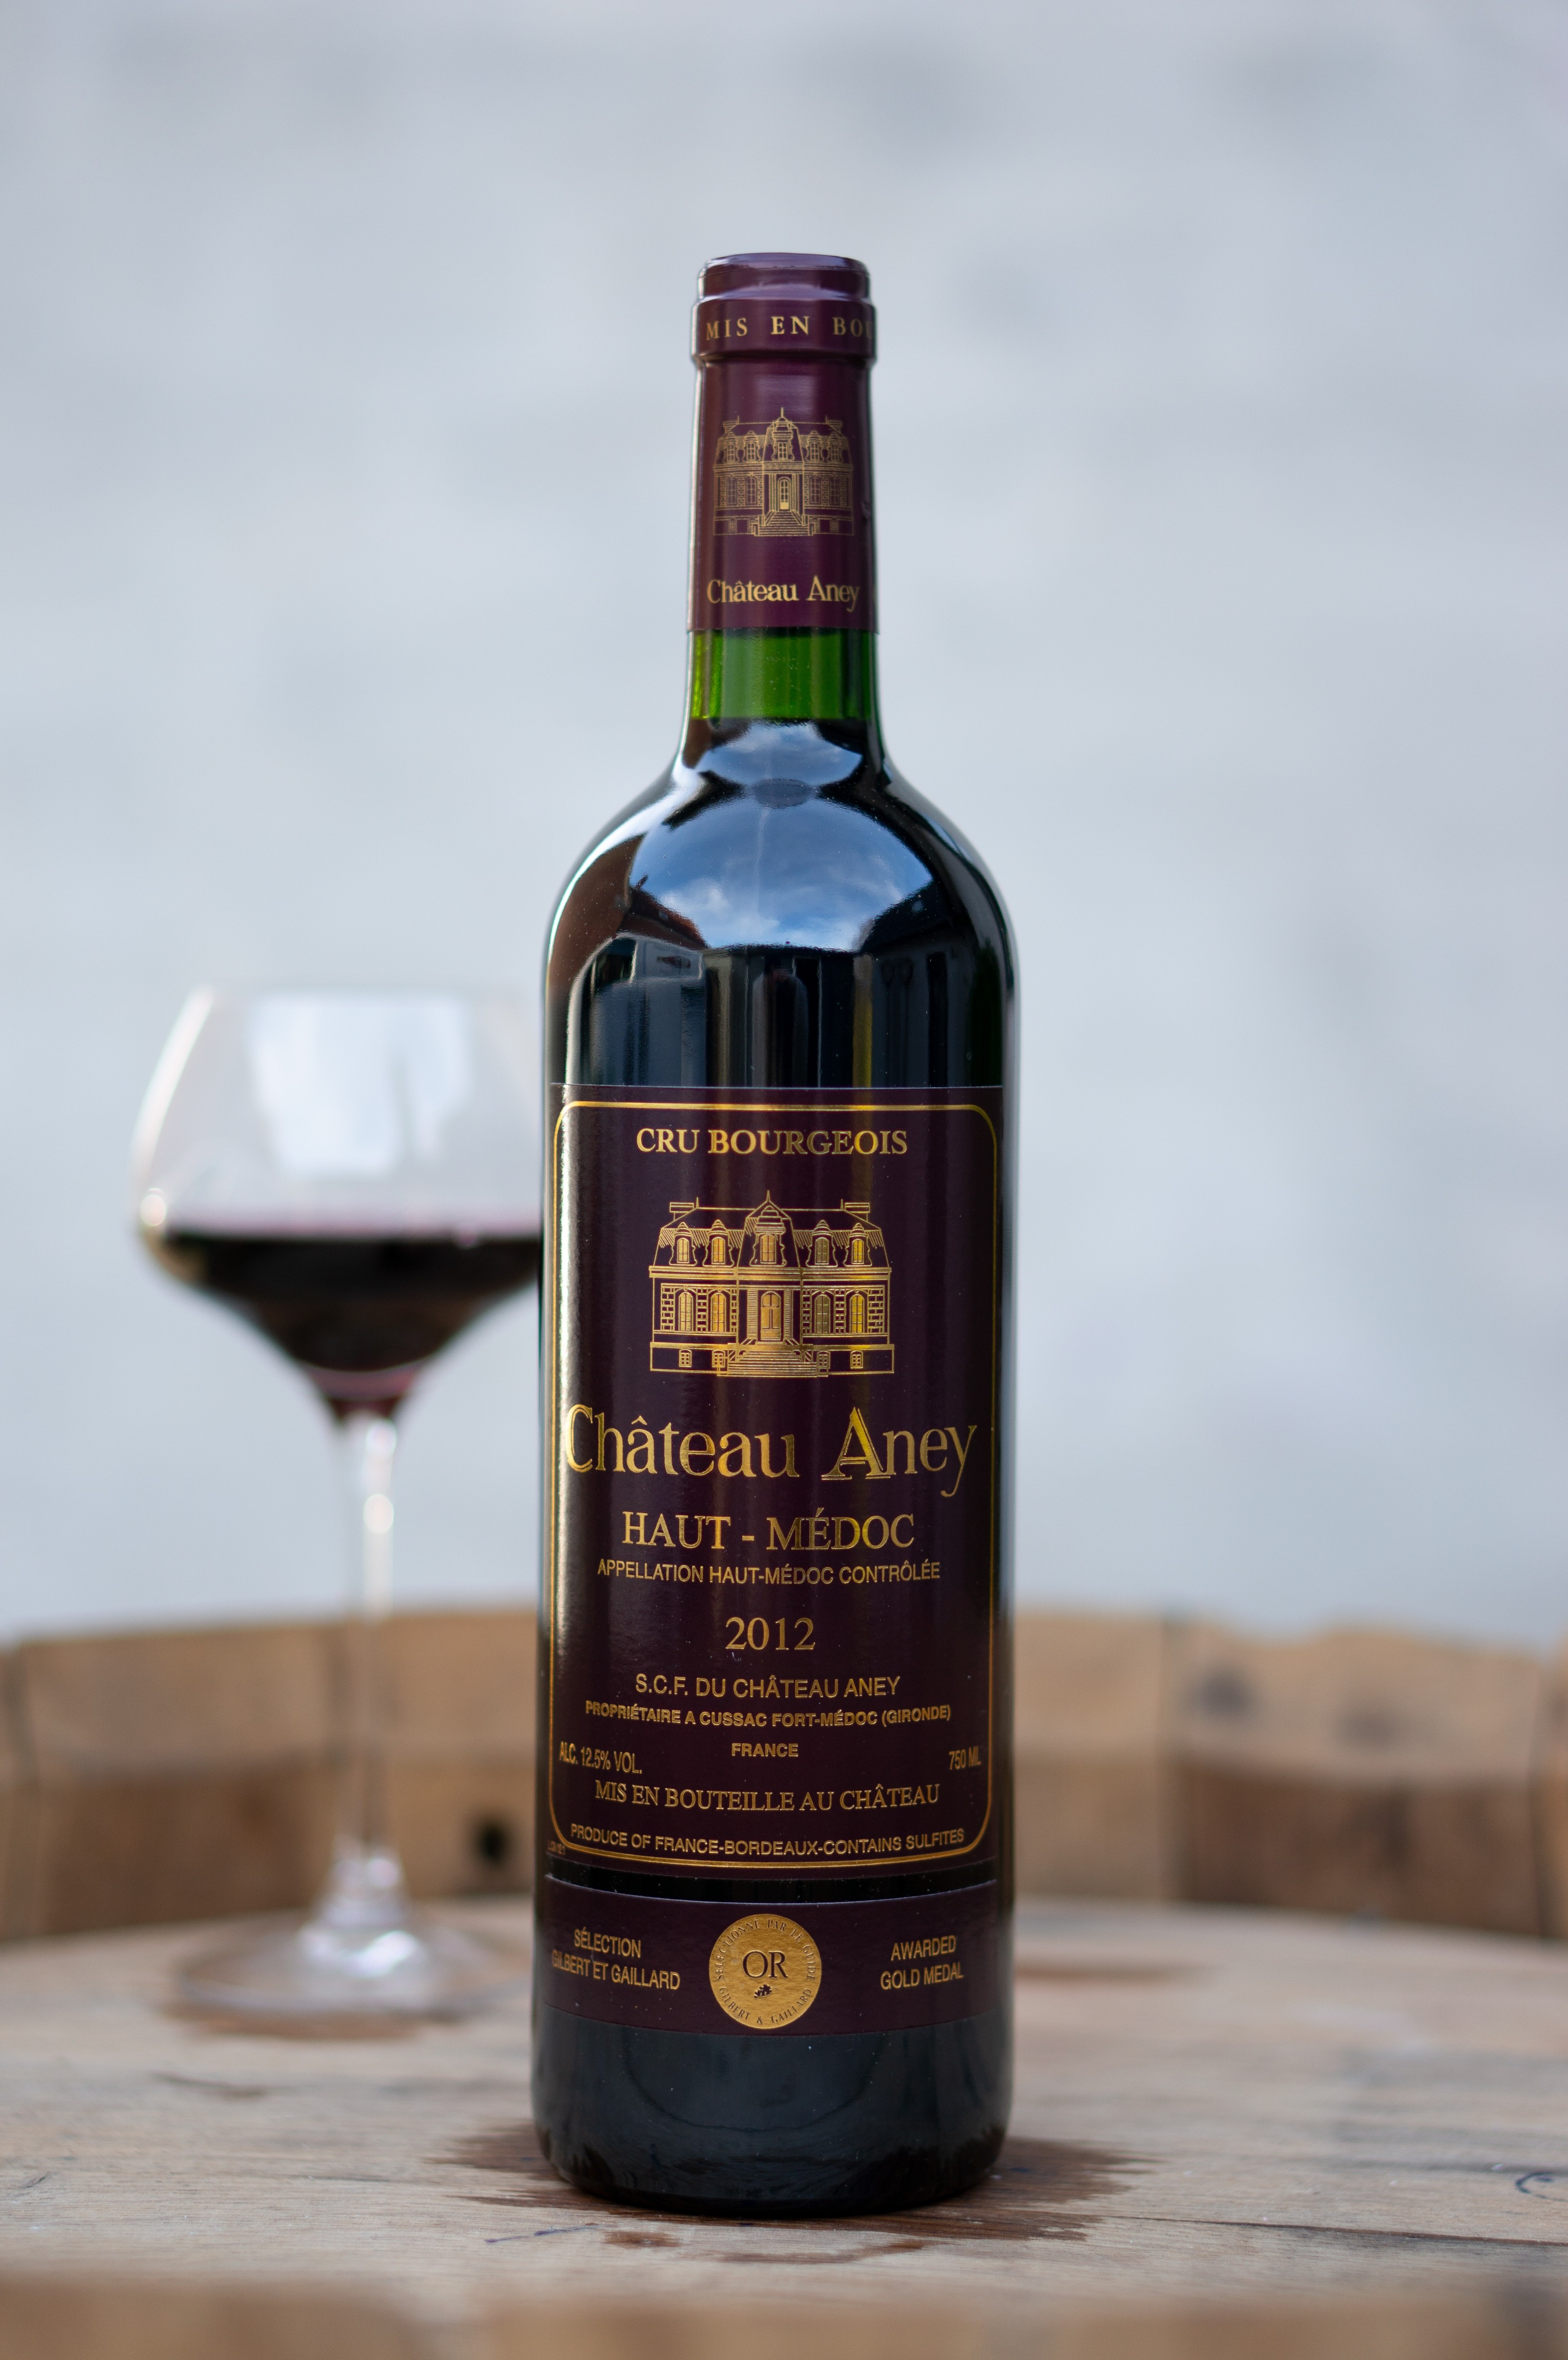 Chateau Aney 2012